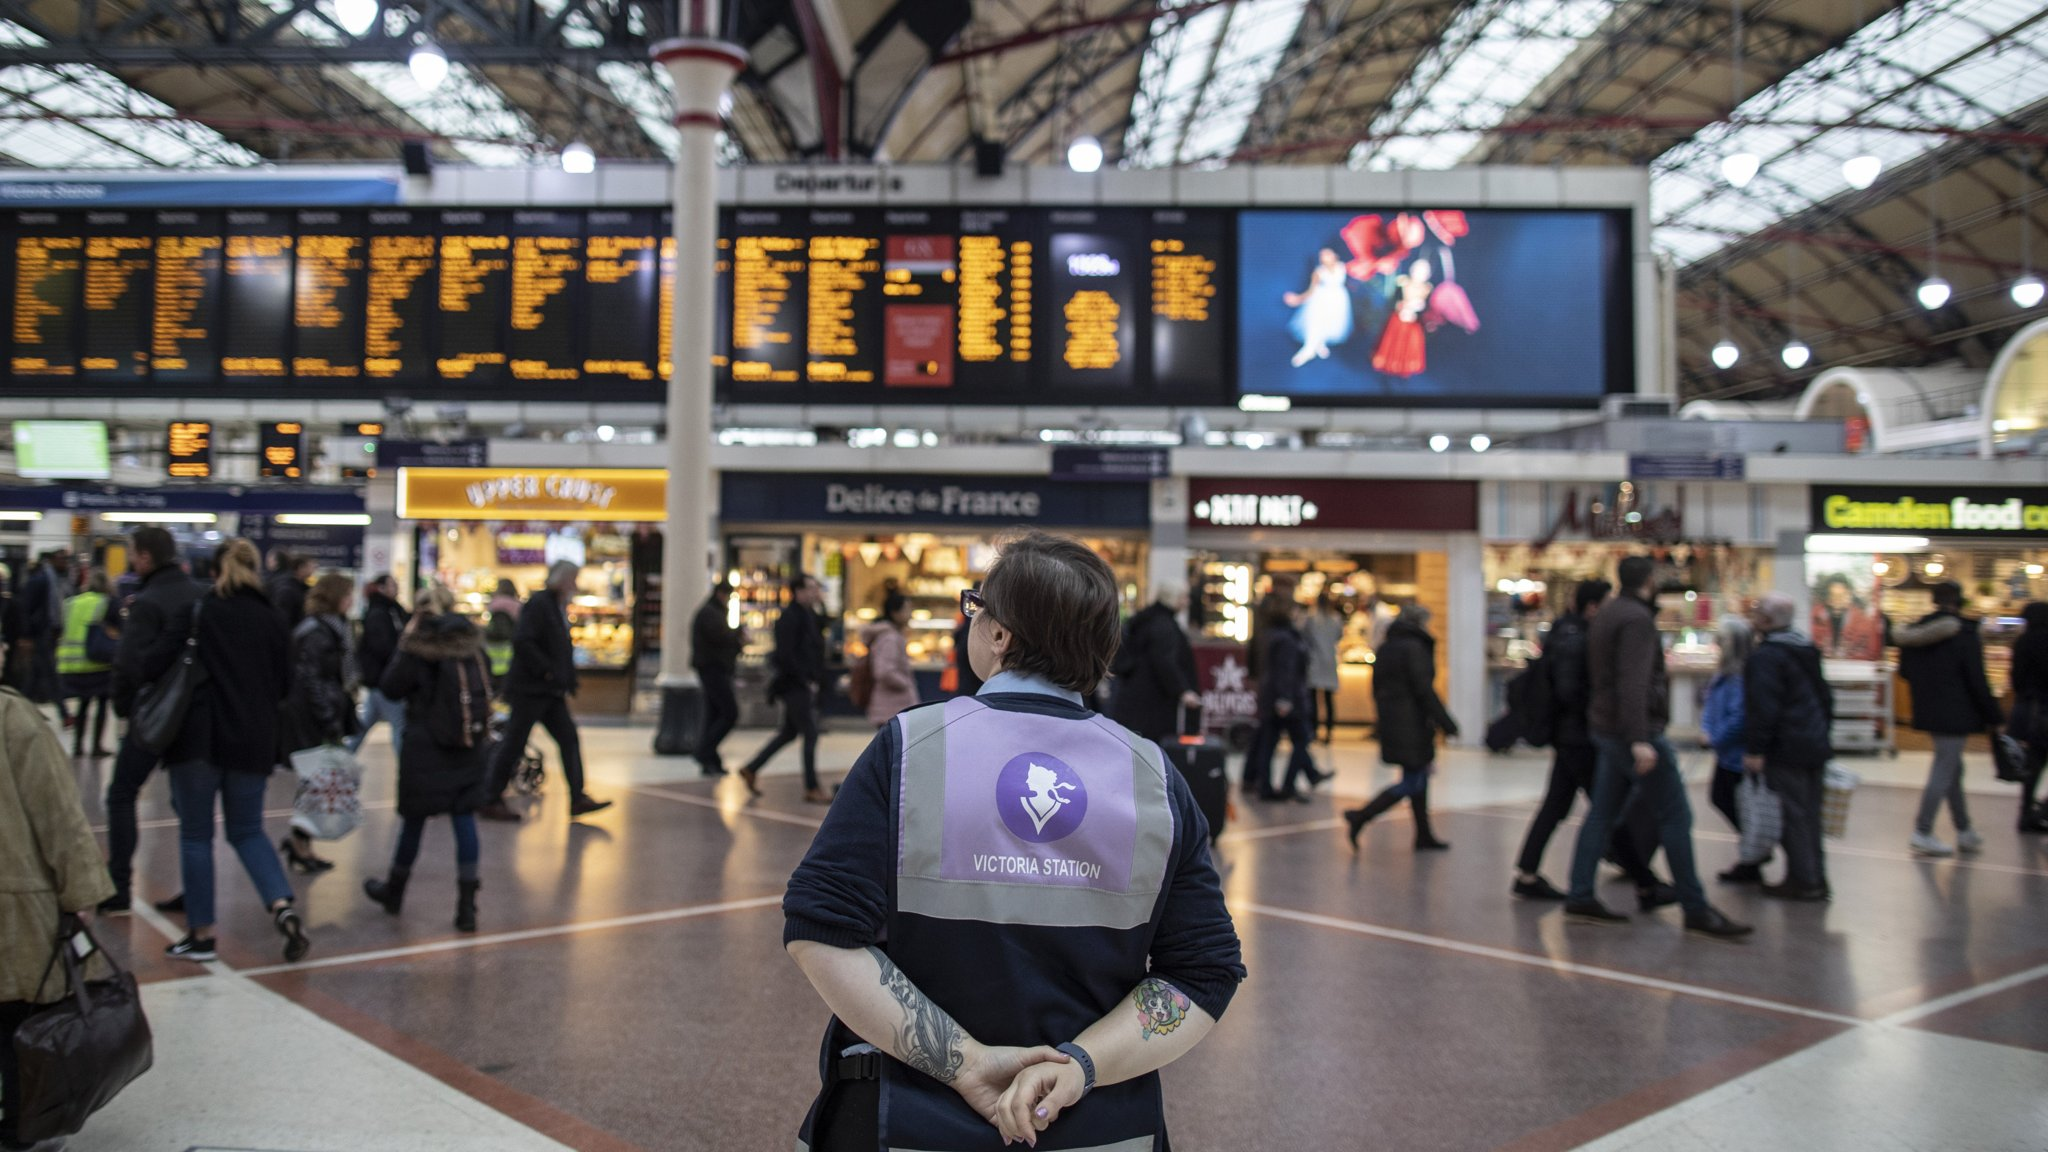 Victoria station partnership offers template for UK rail